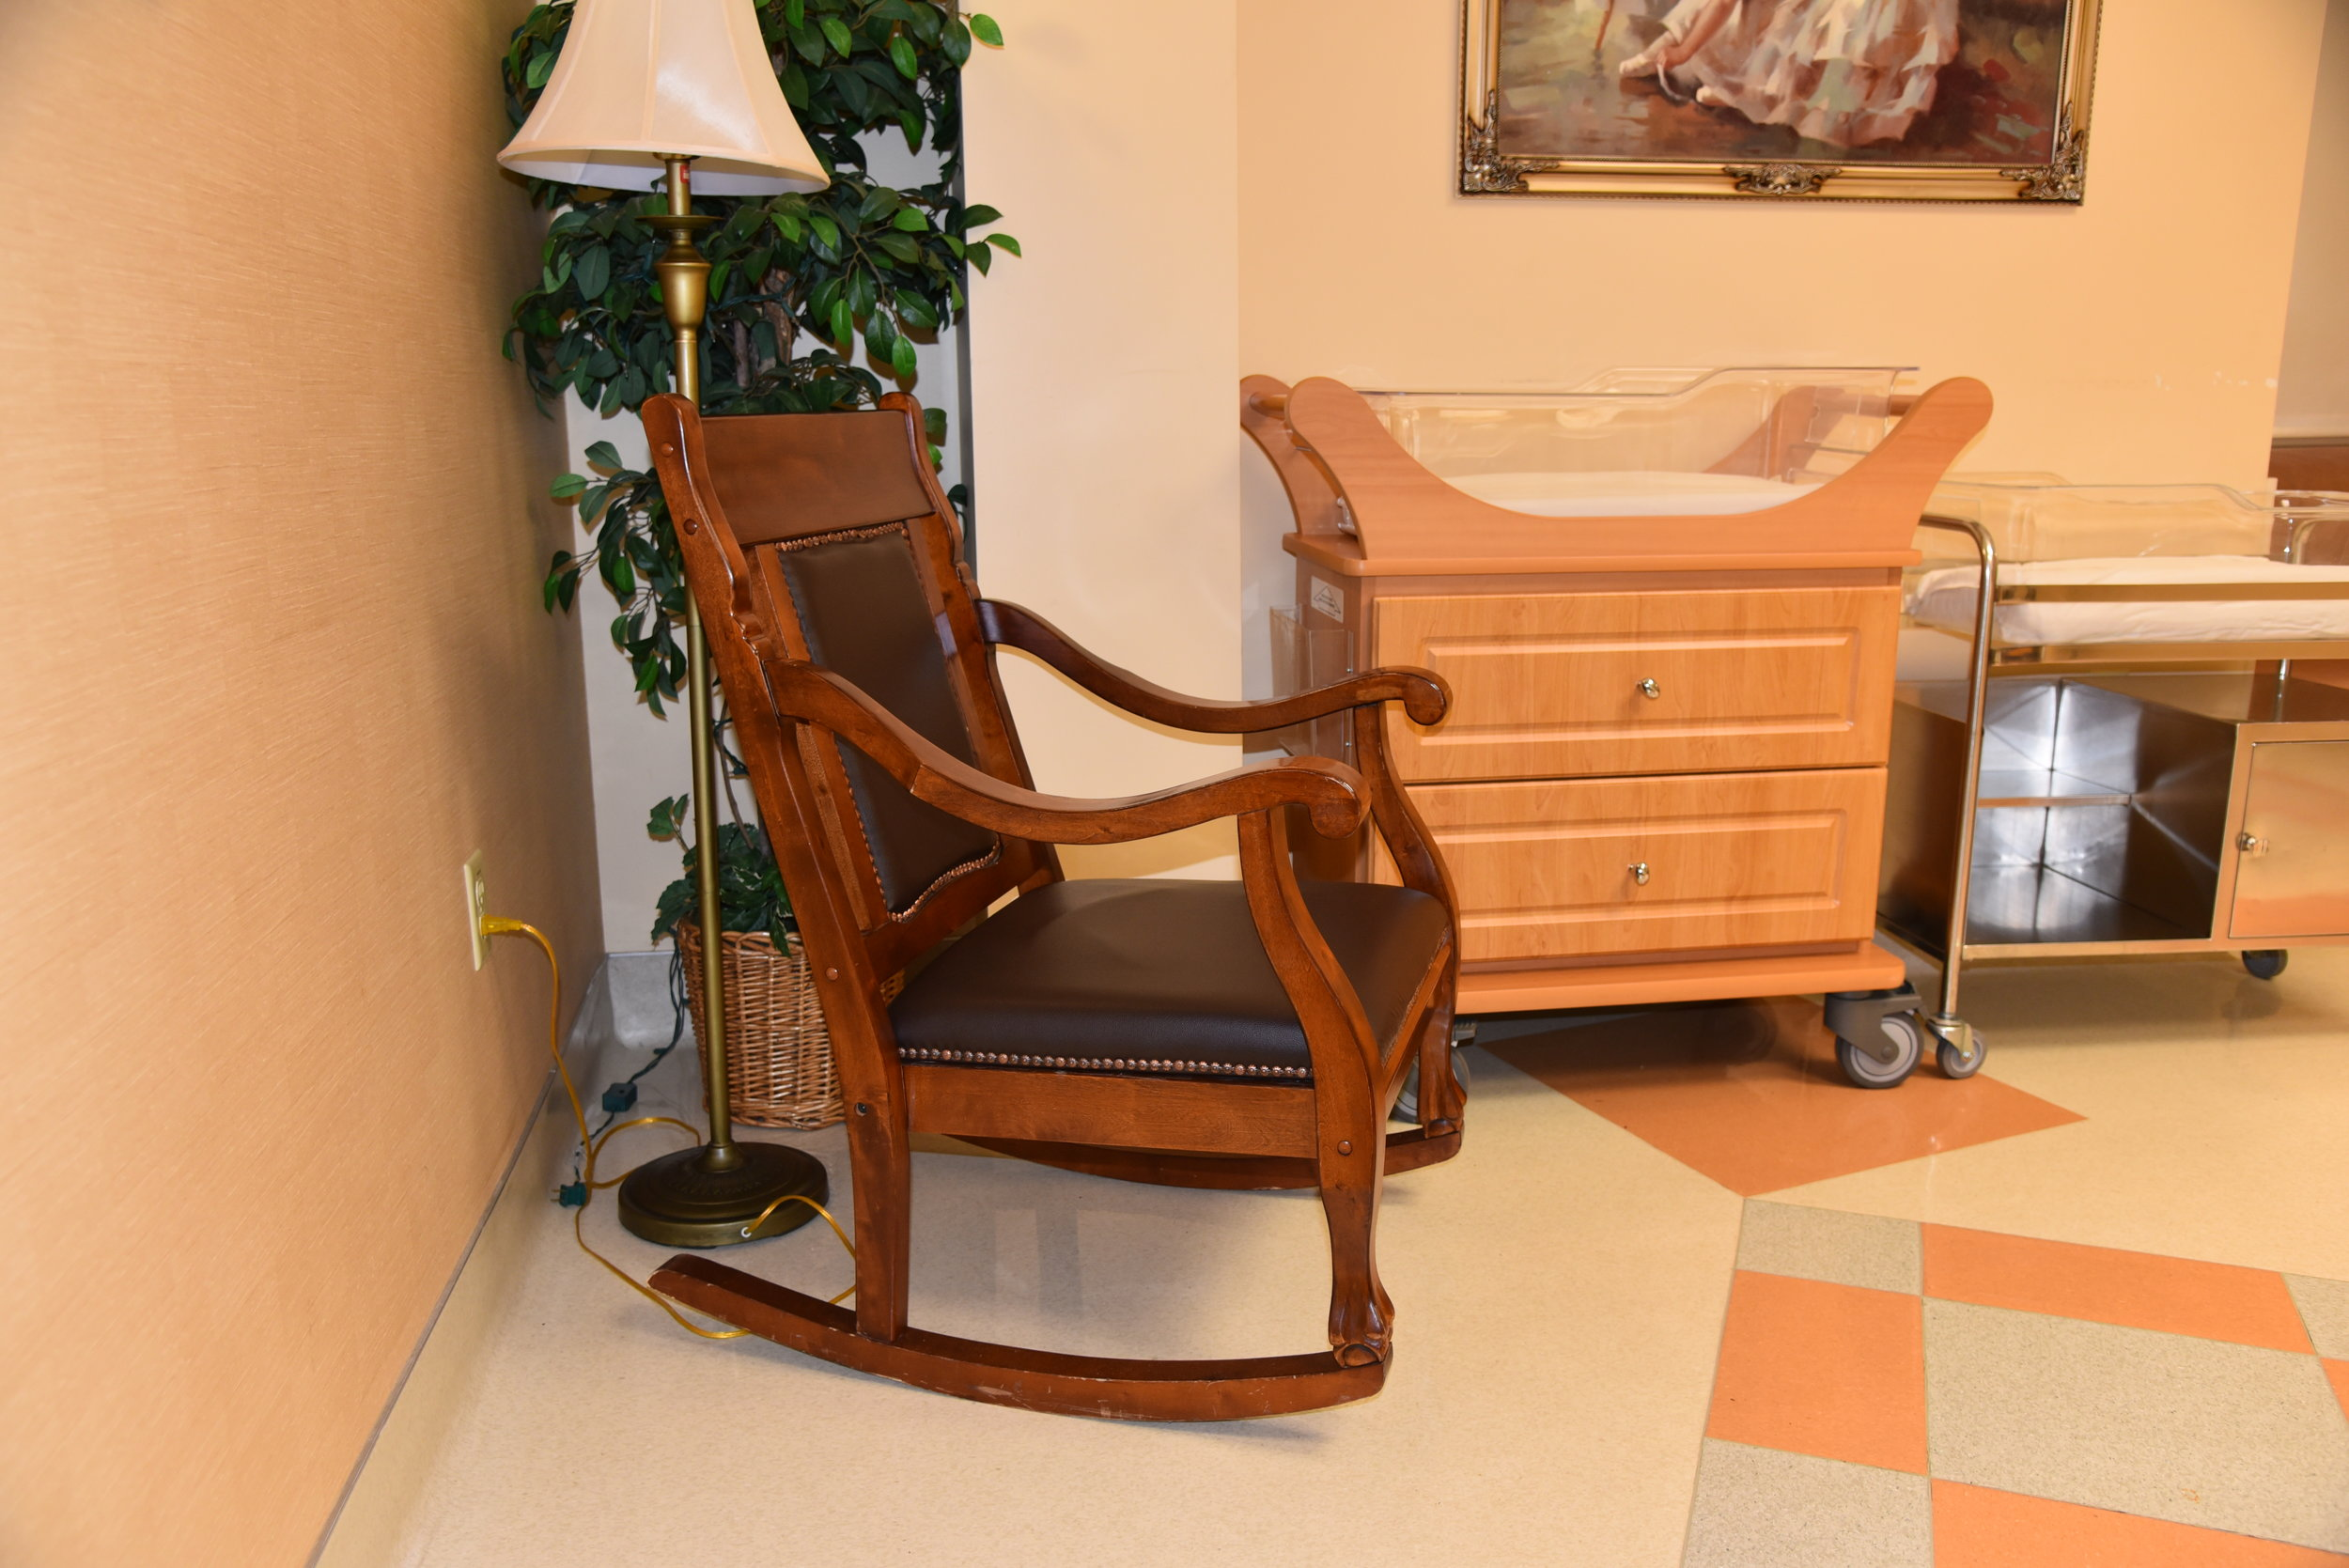 Rocking Chairs Donated to the OB